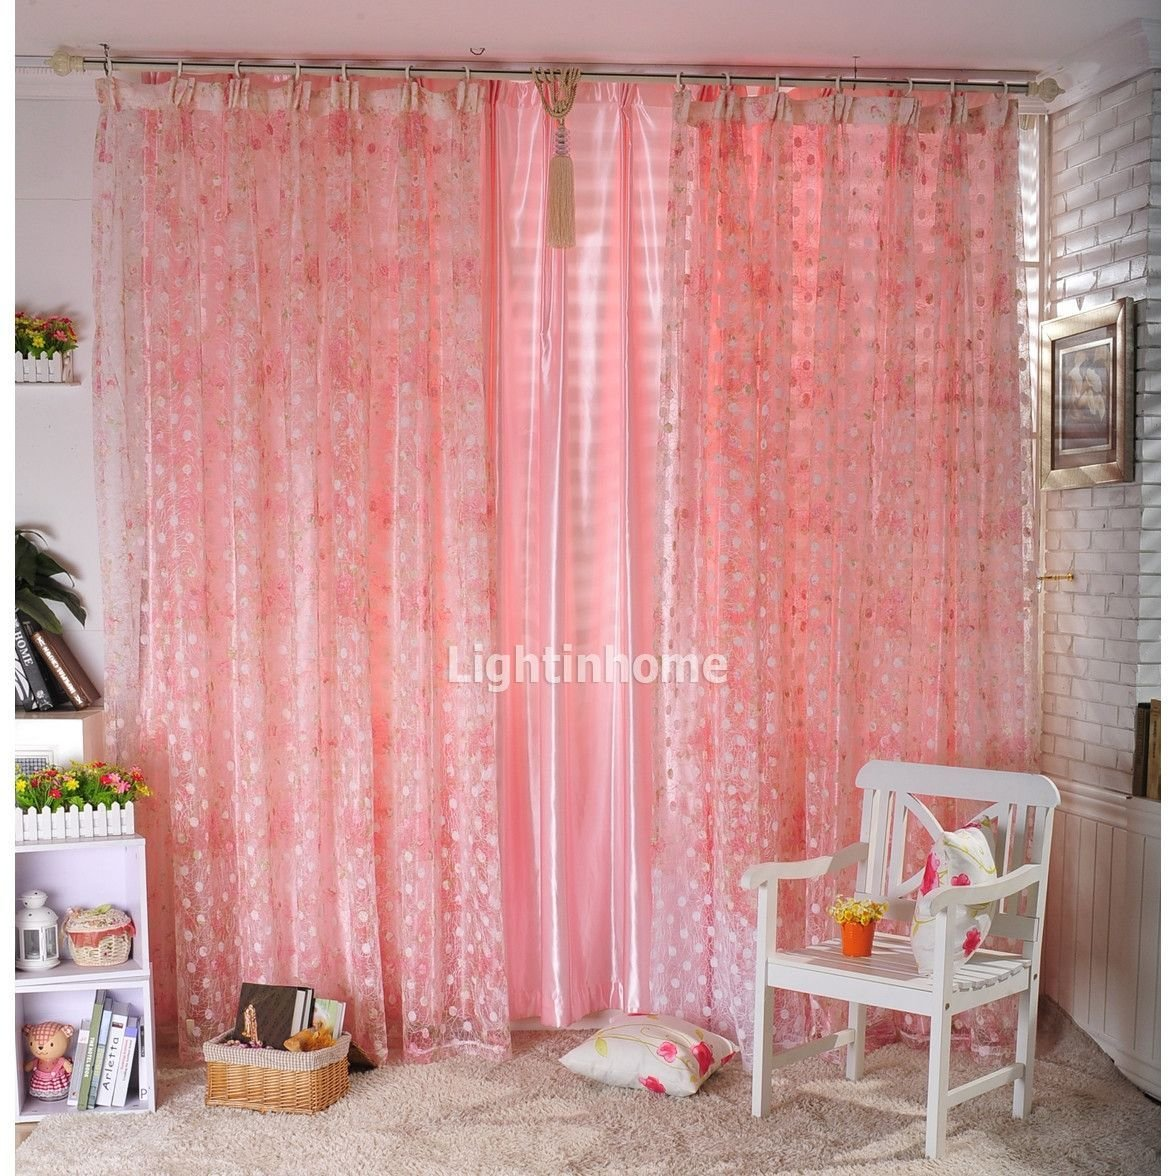 Best Sweet Pink Bedroom Curtains For Girls Bedroom Accessories With Pictures